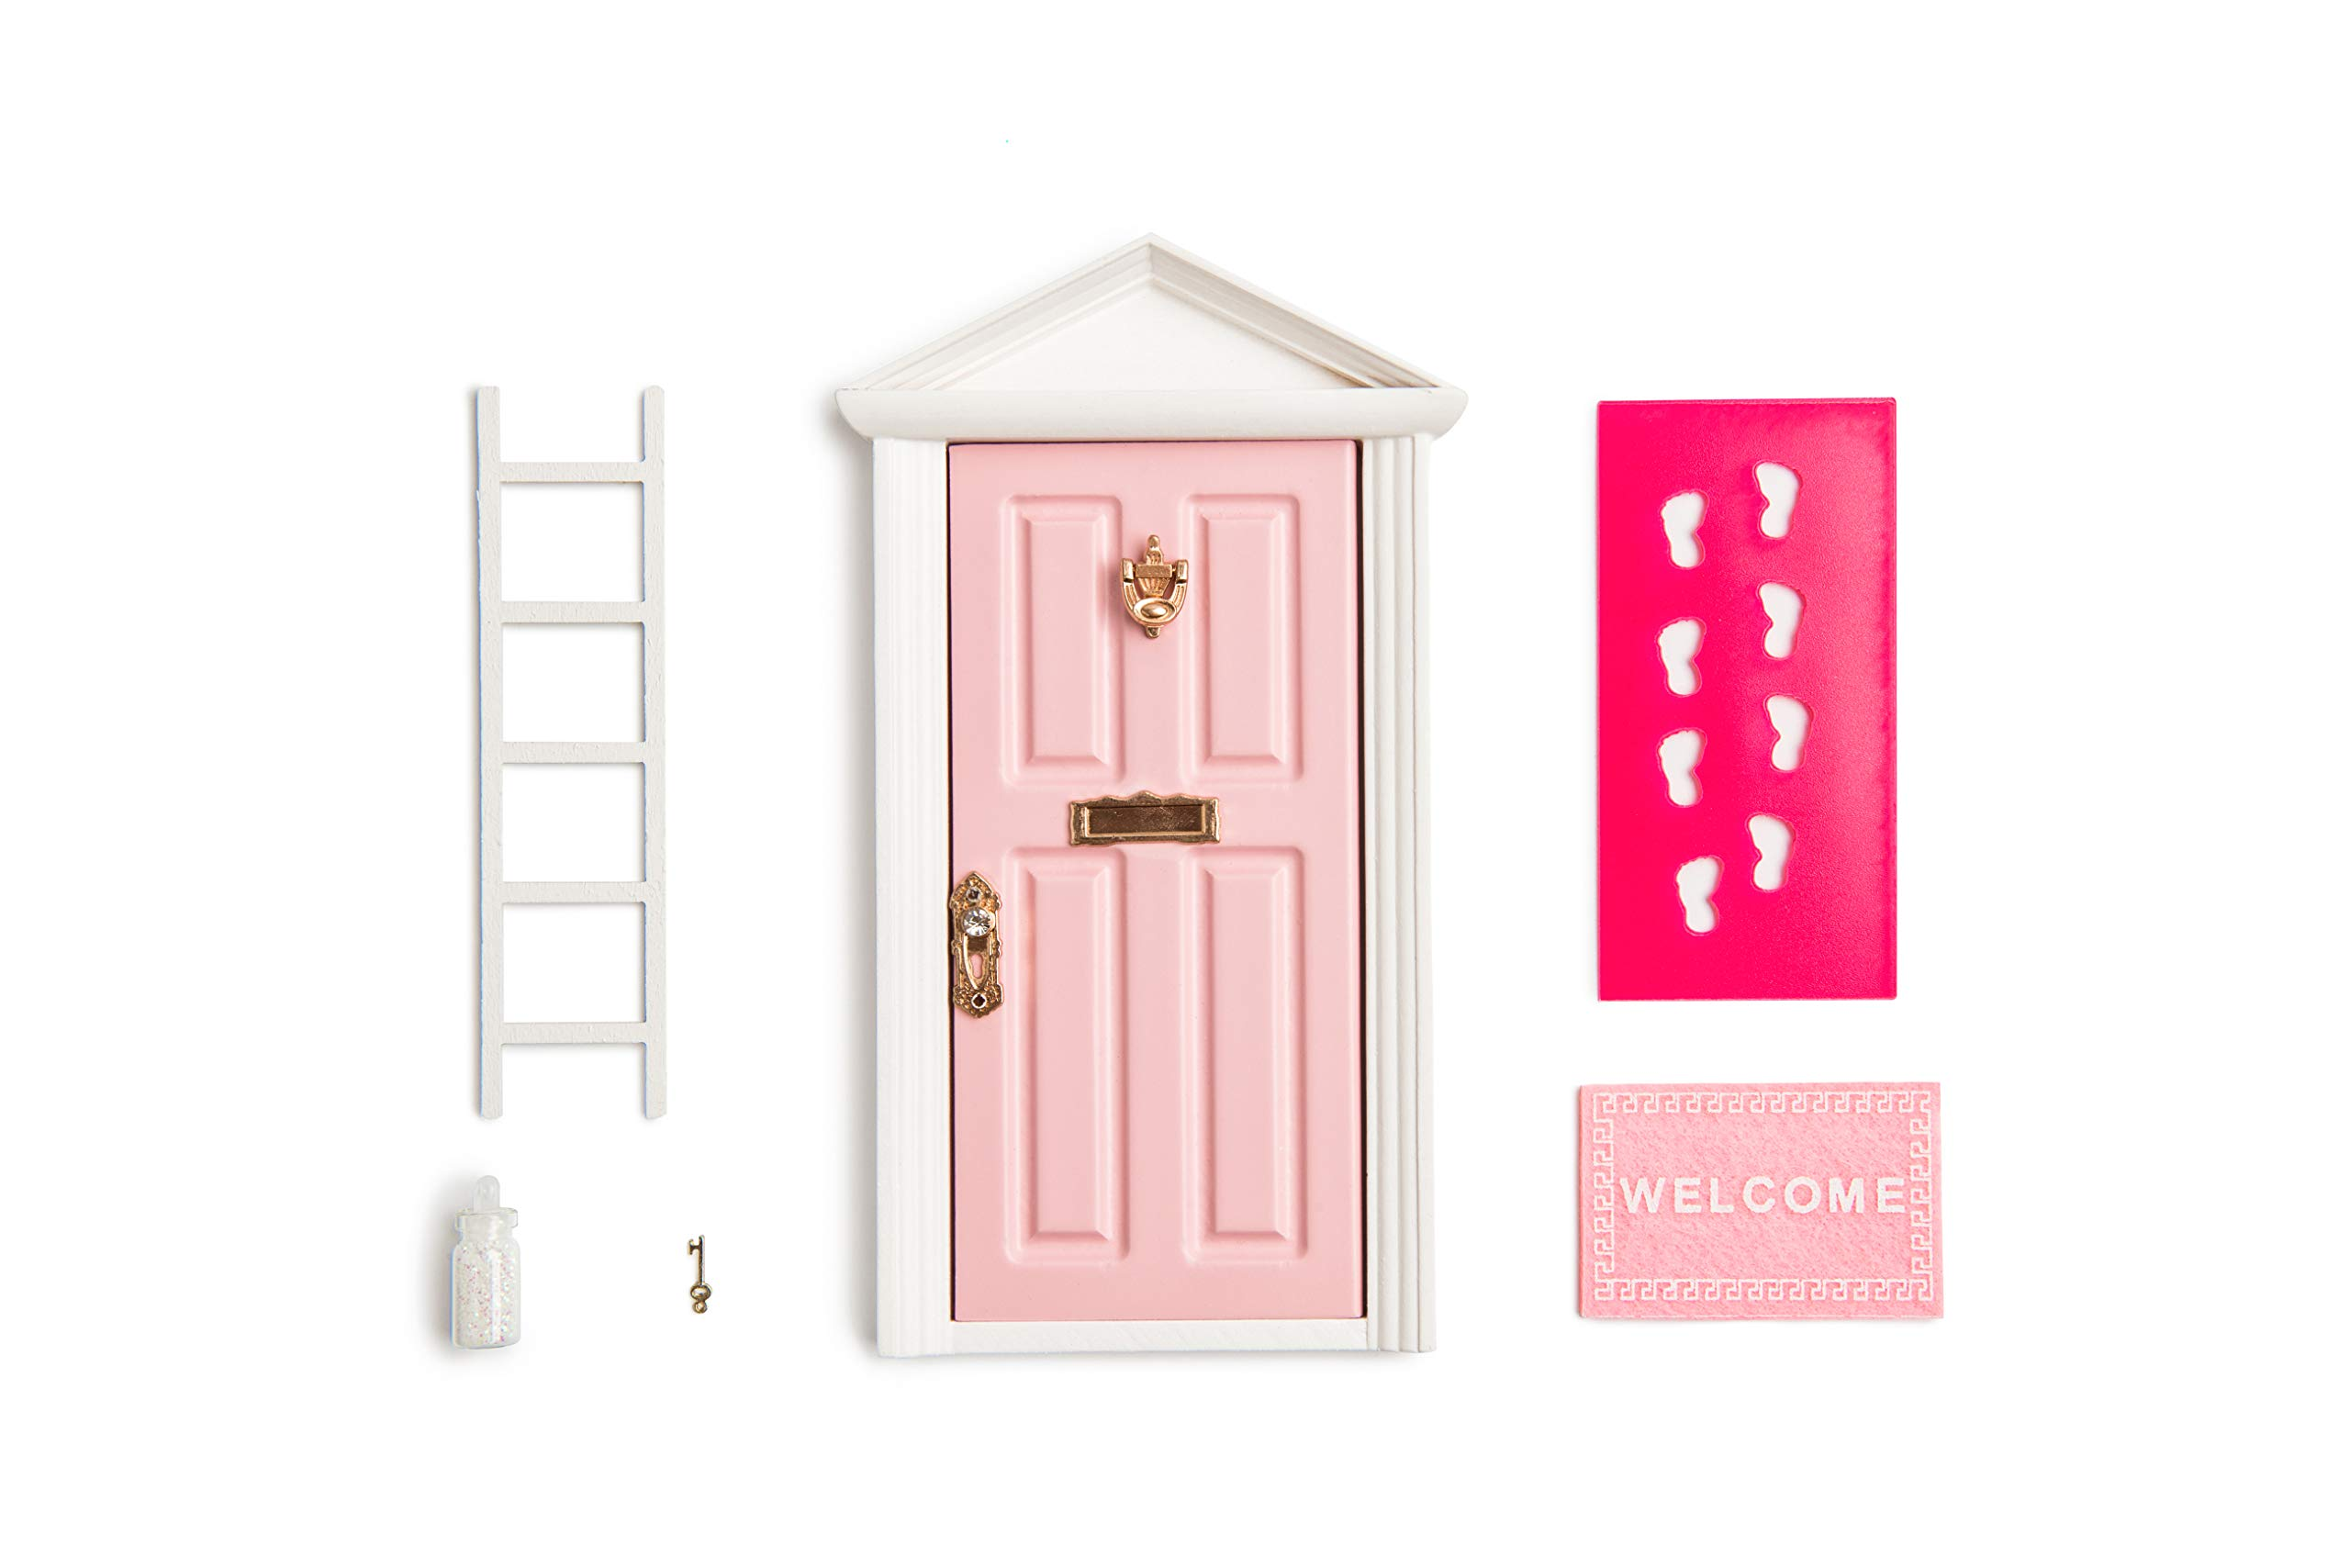 blminiatures The Little Wooden Fairy Door Thats Open Pink Fairy Door Open Outwards Fairy Door Accessories Comes with Fairy Key,Fairy Dust,Foot Stencil,Welcome Mat